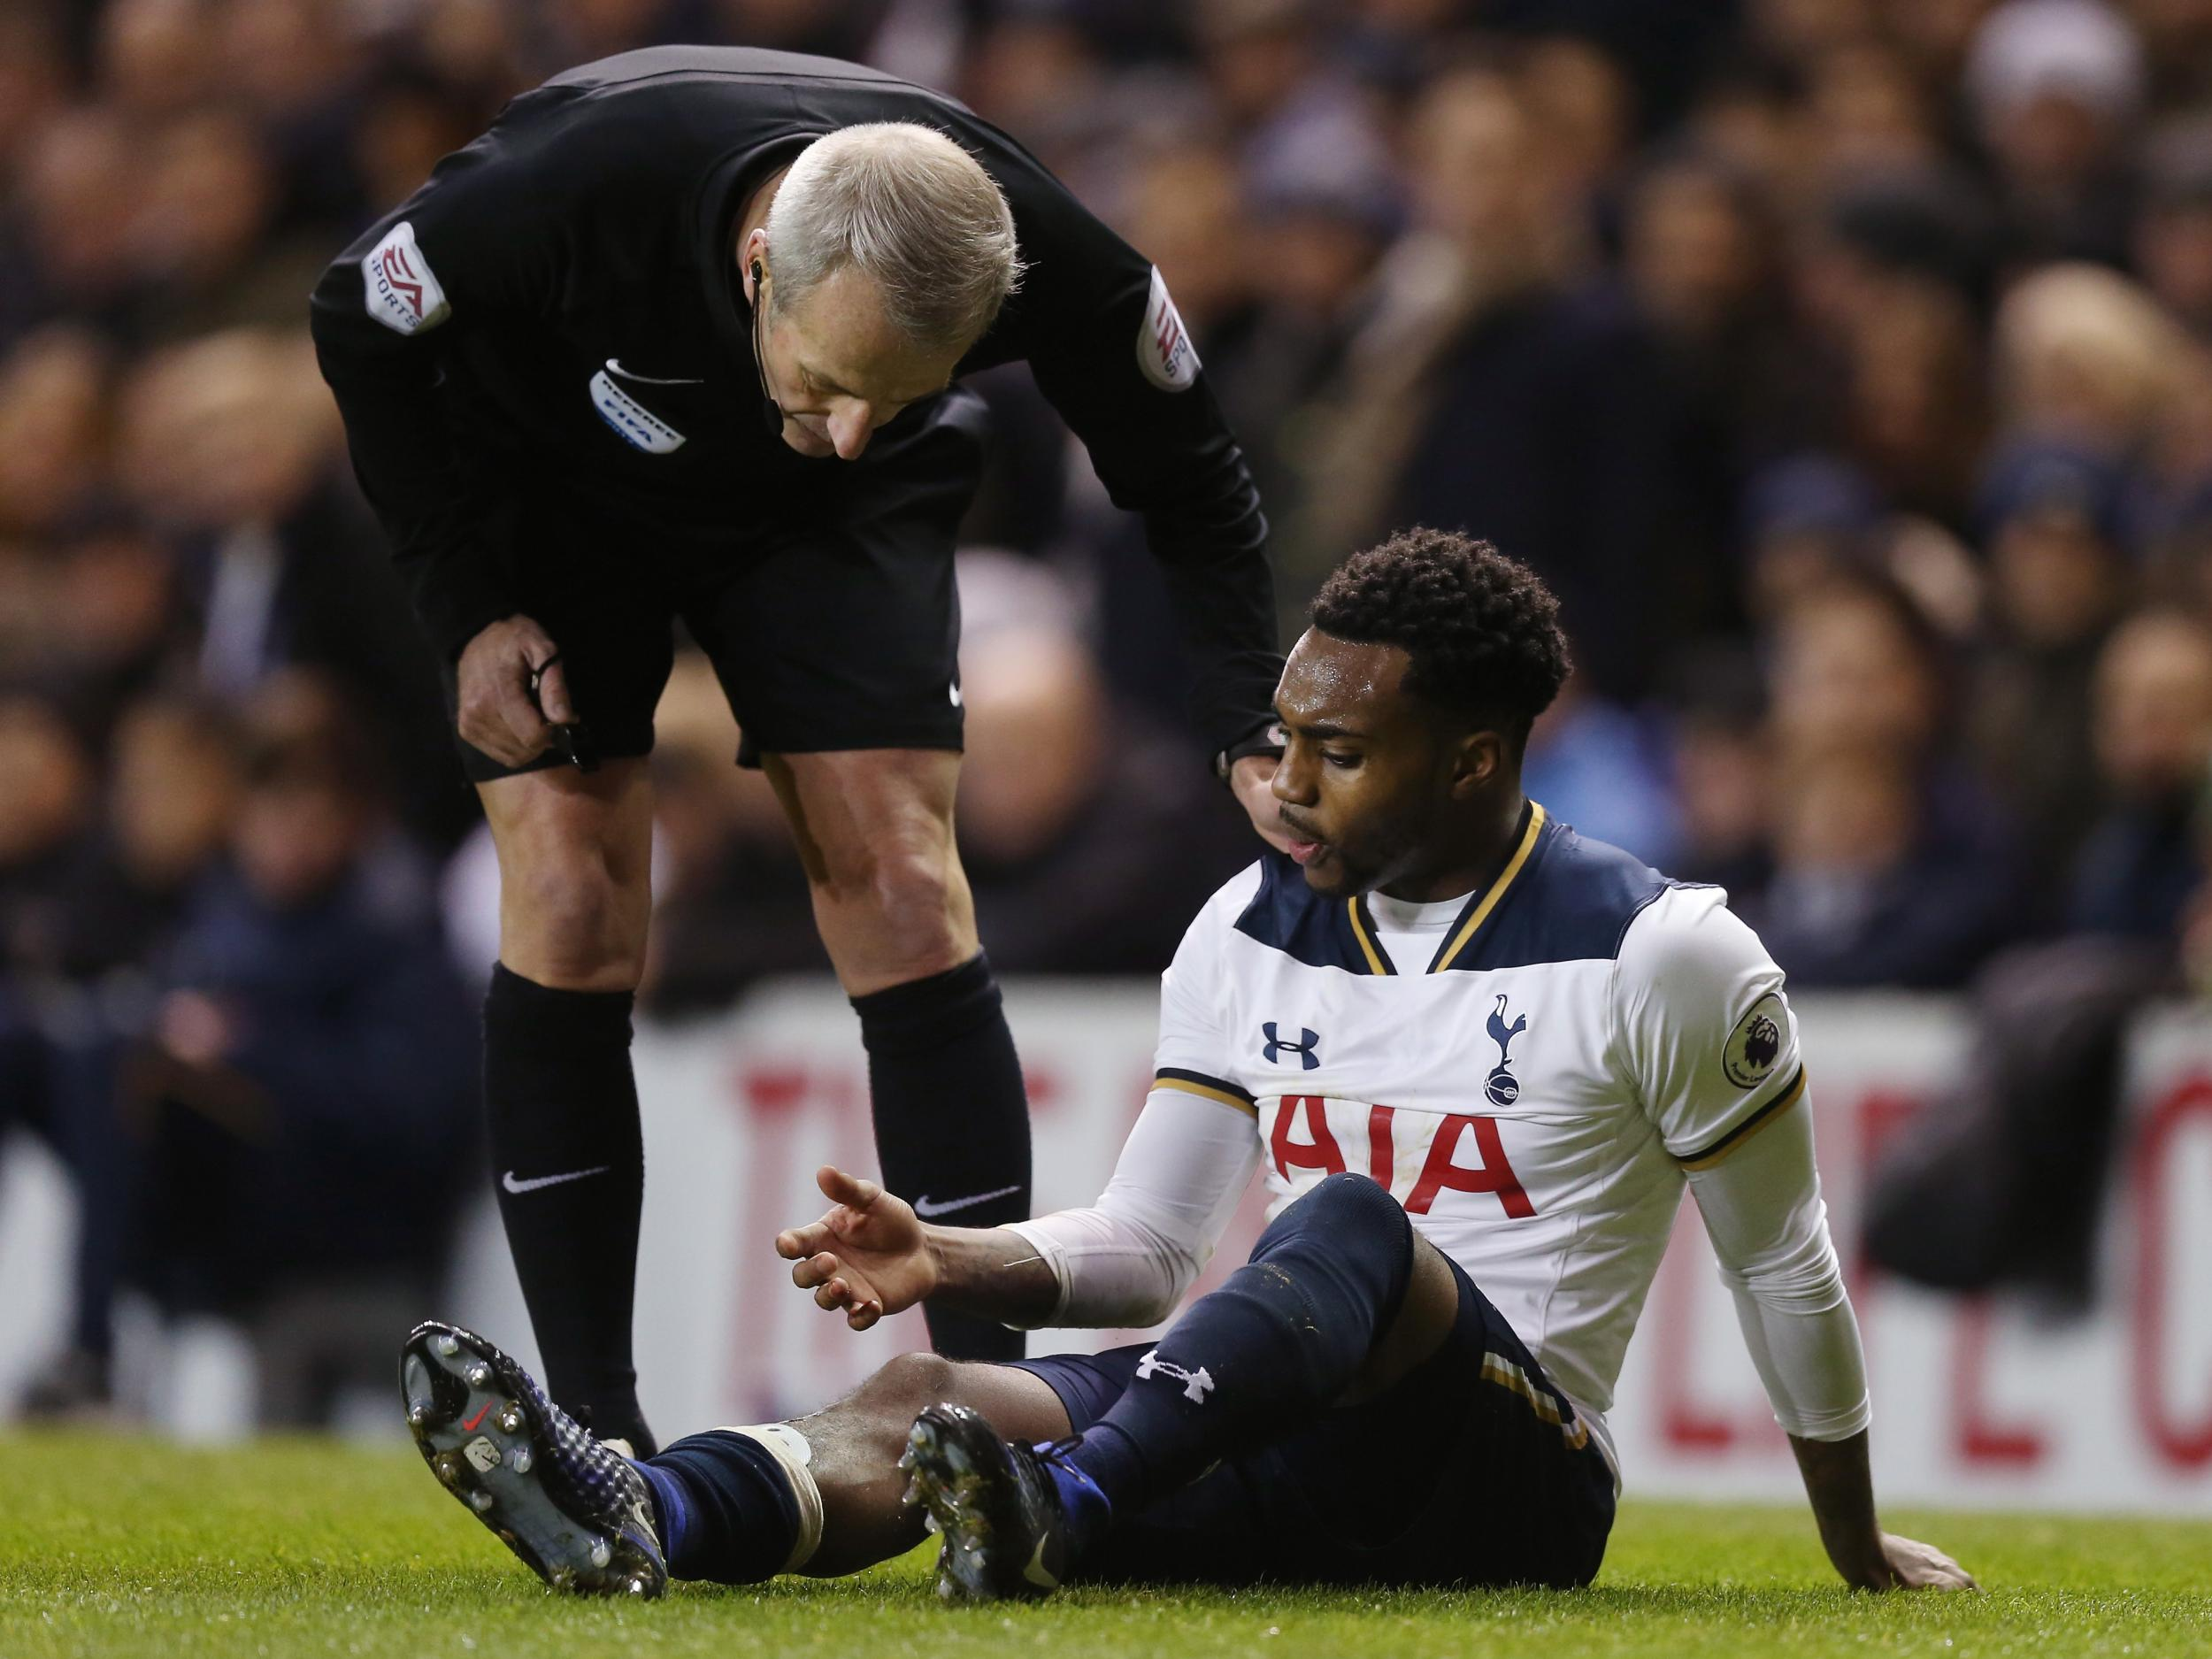 Tottenham's Danny Rose set to miss the start of the new Premier League season after knee surgery